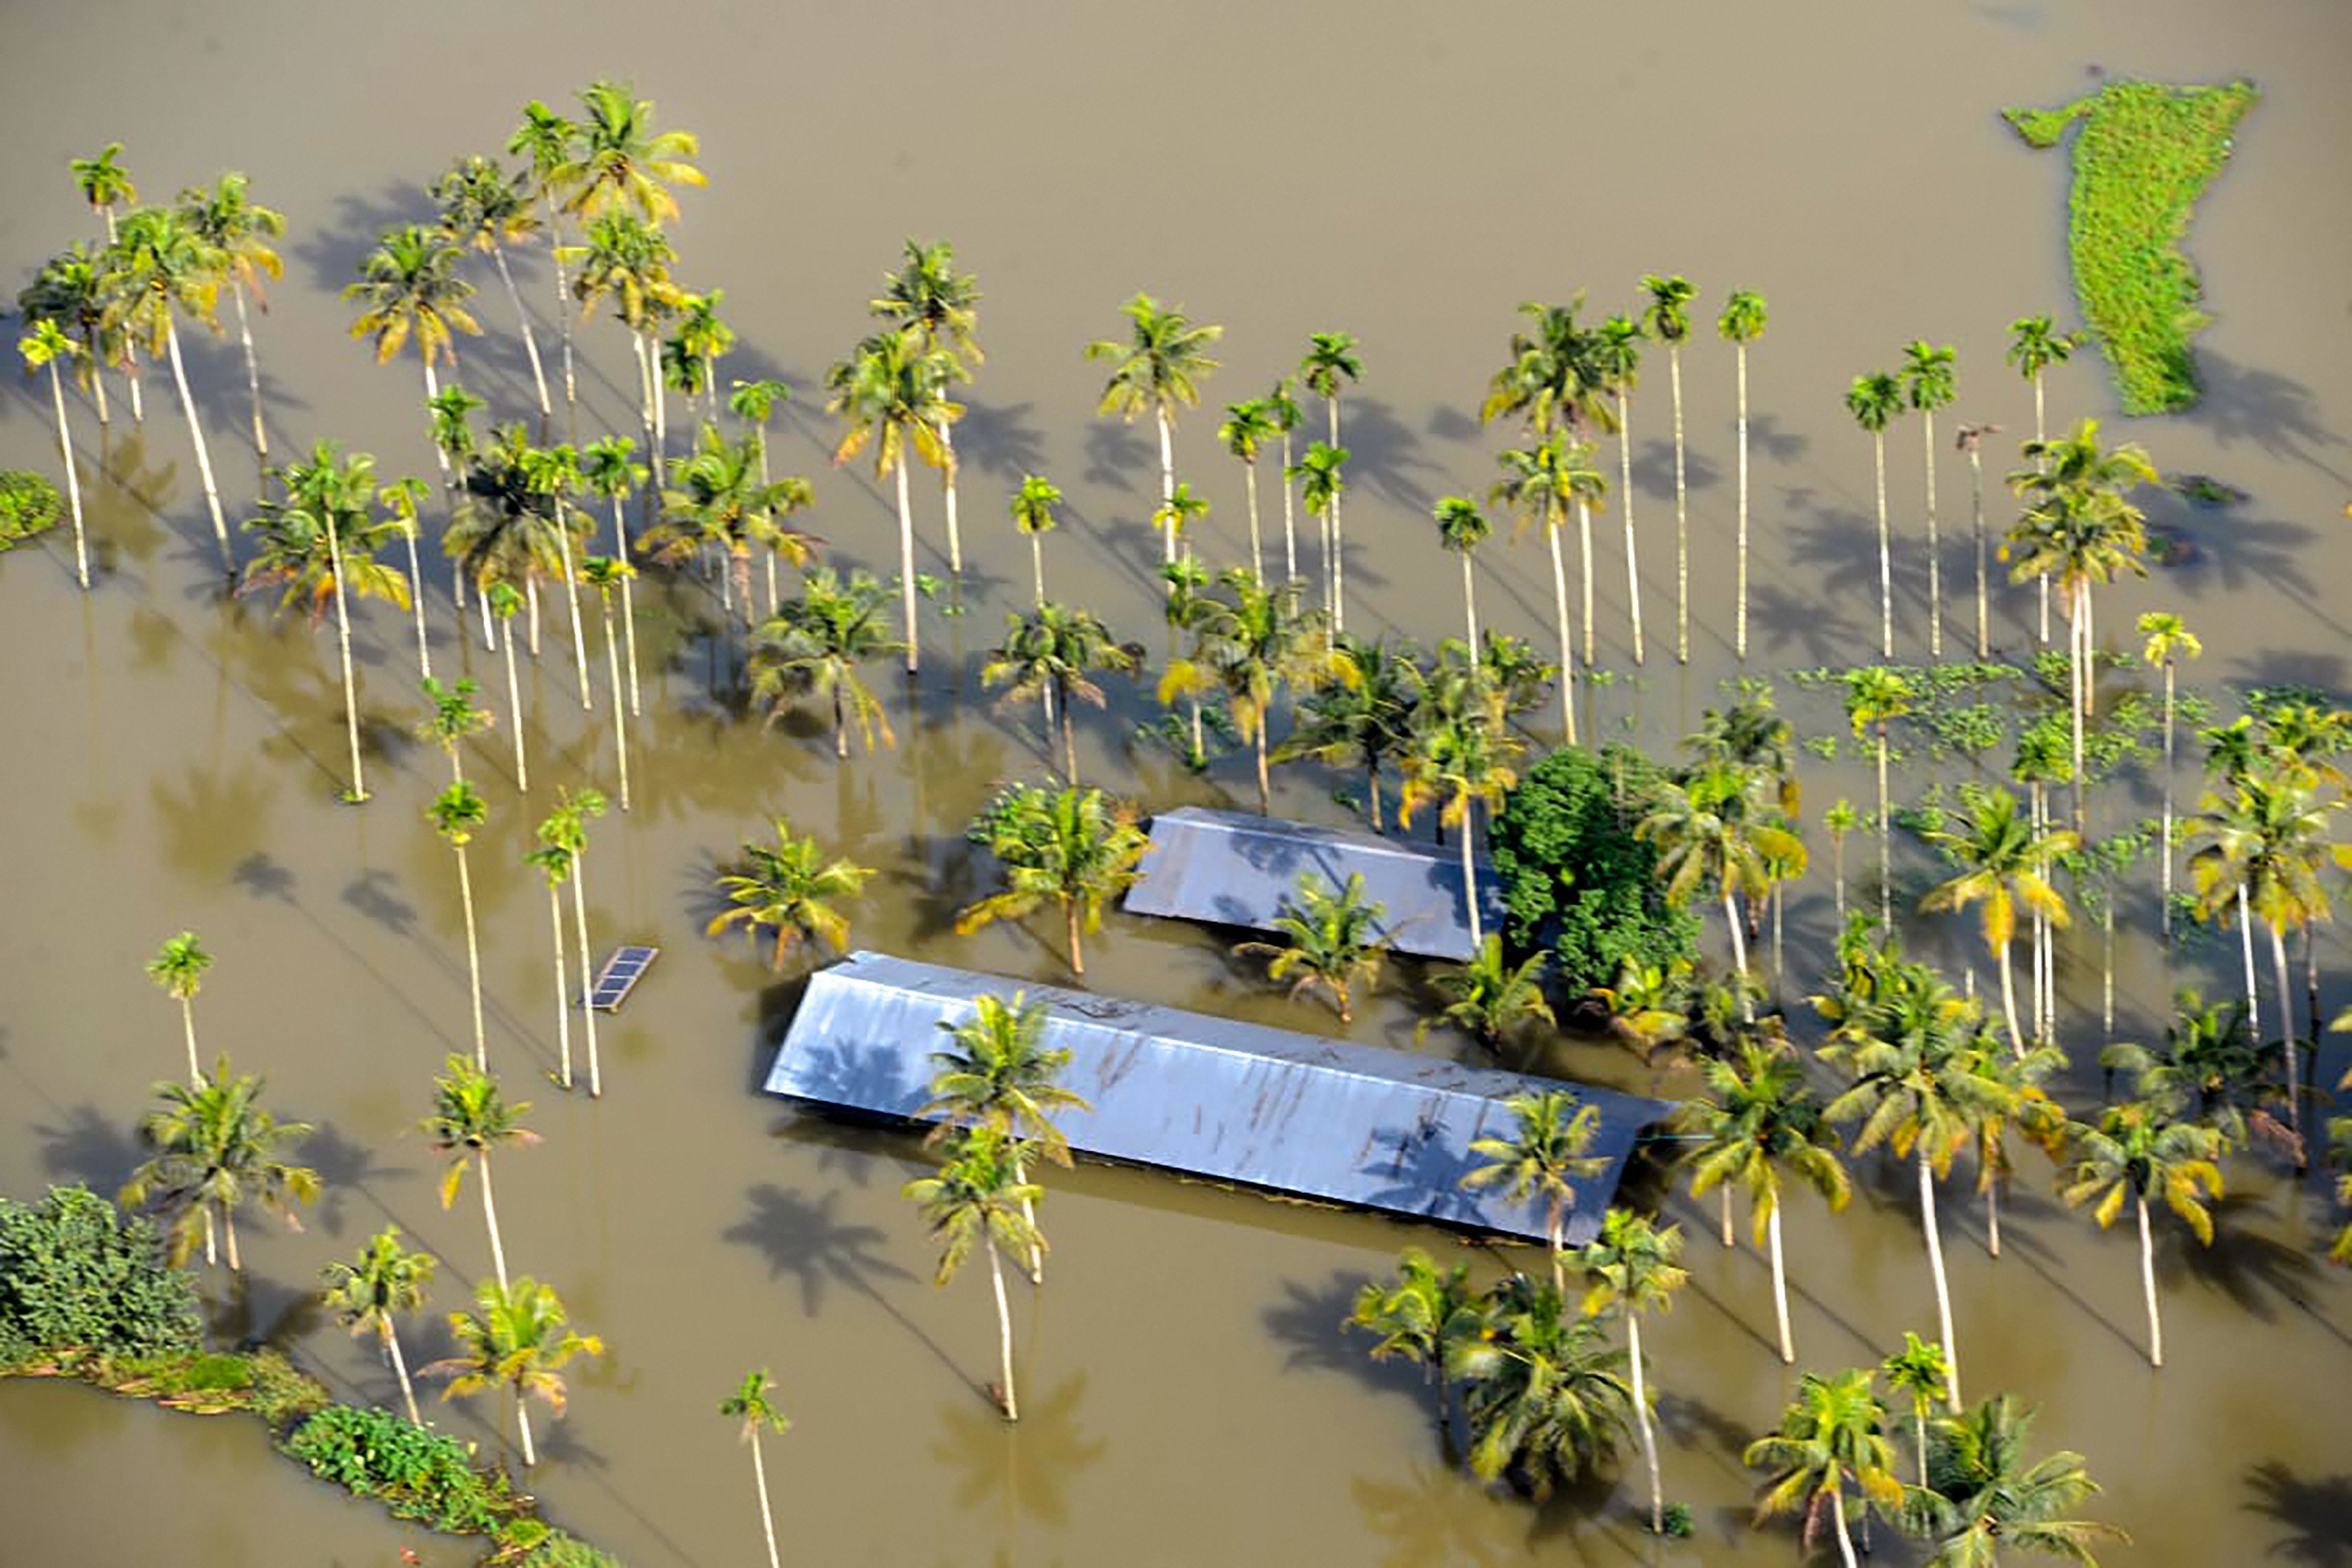 Toll climbs to 67 in Kerala rain mayhem; 58 missing; over 2.27 lakh people displaced